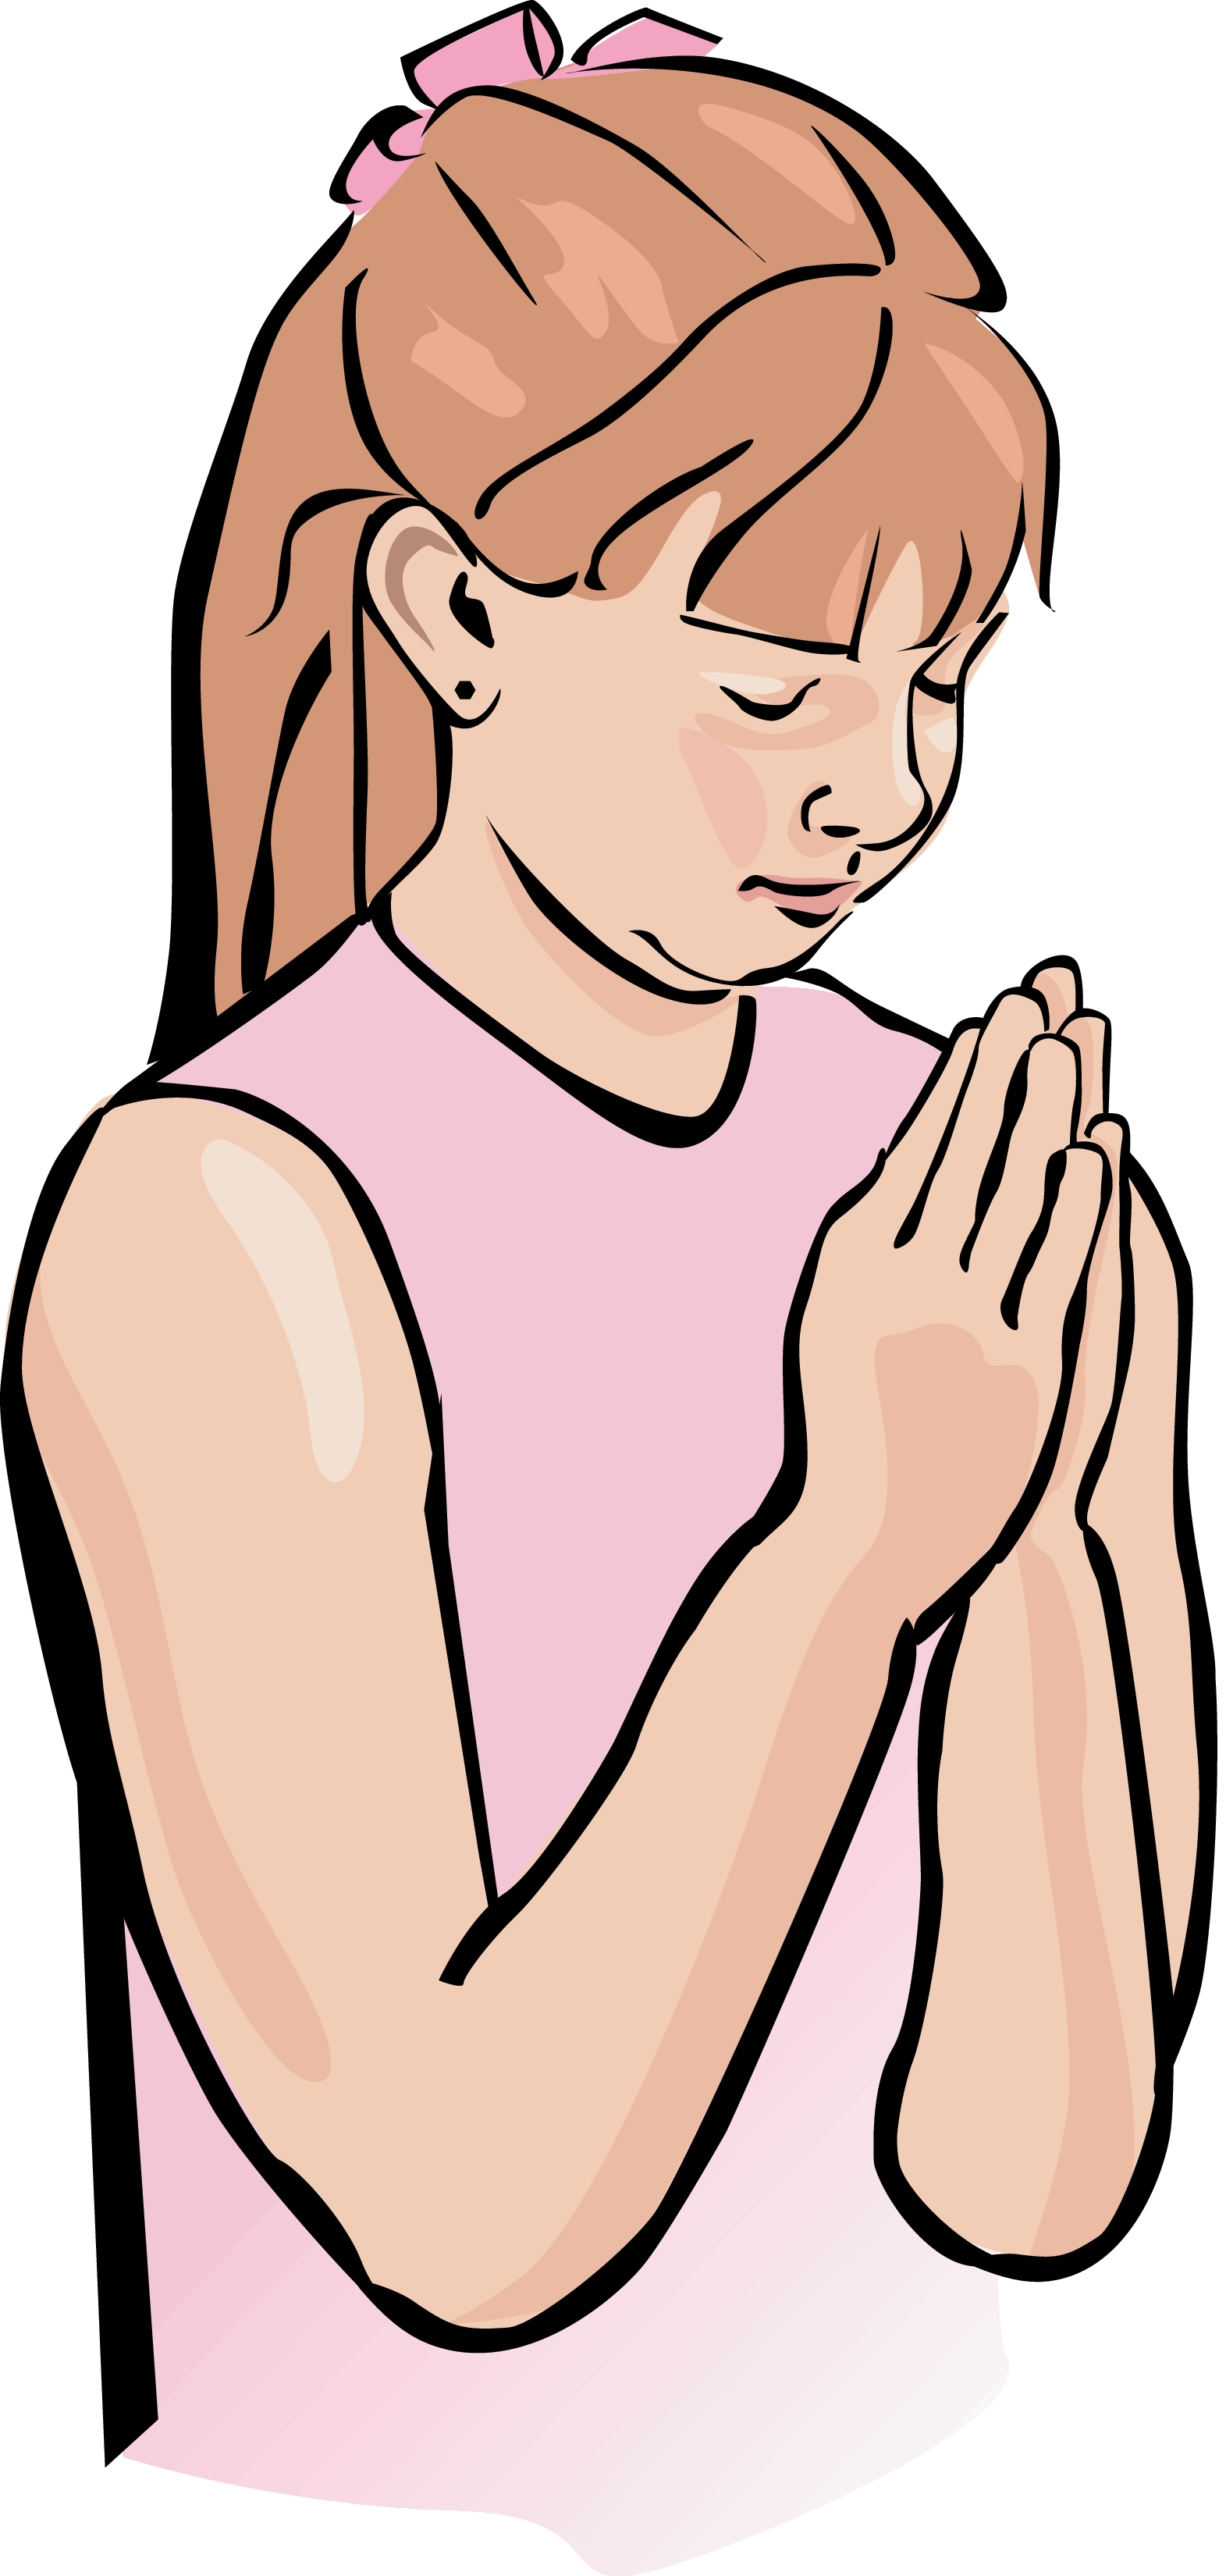 Child prayer clipart free clipart images 2